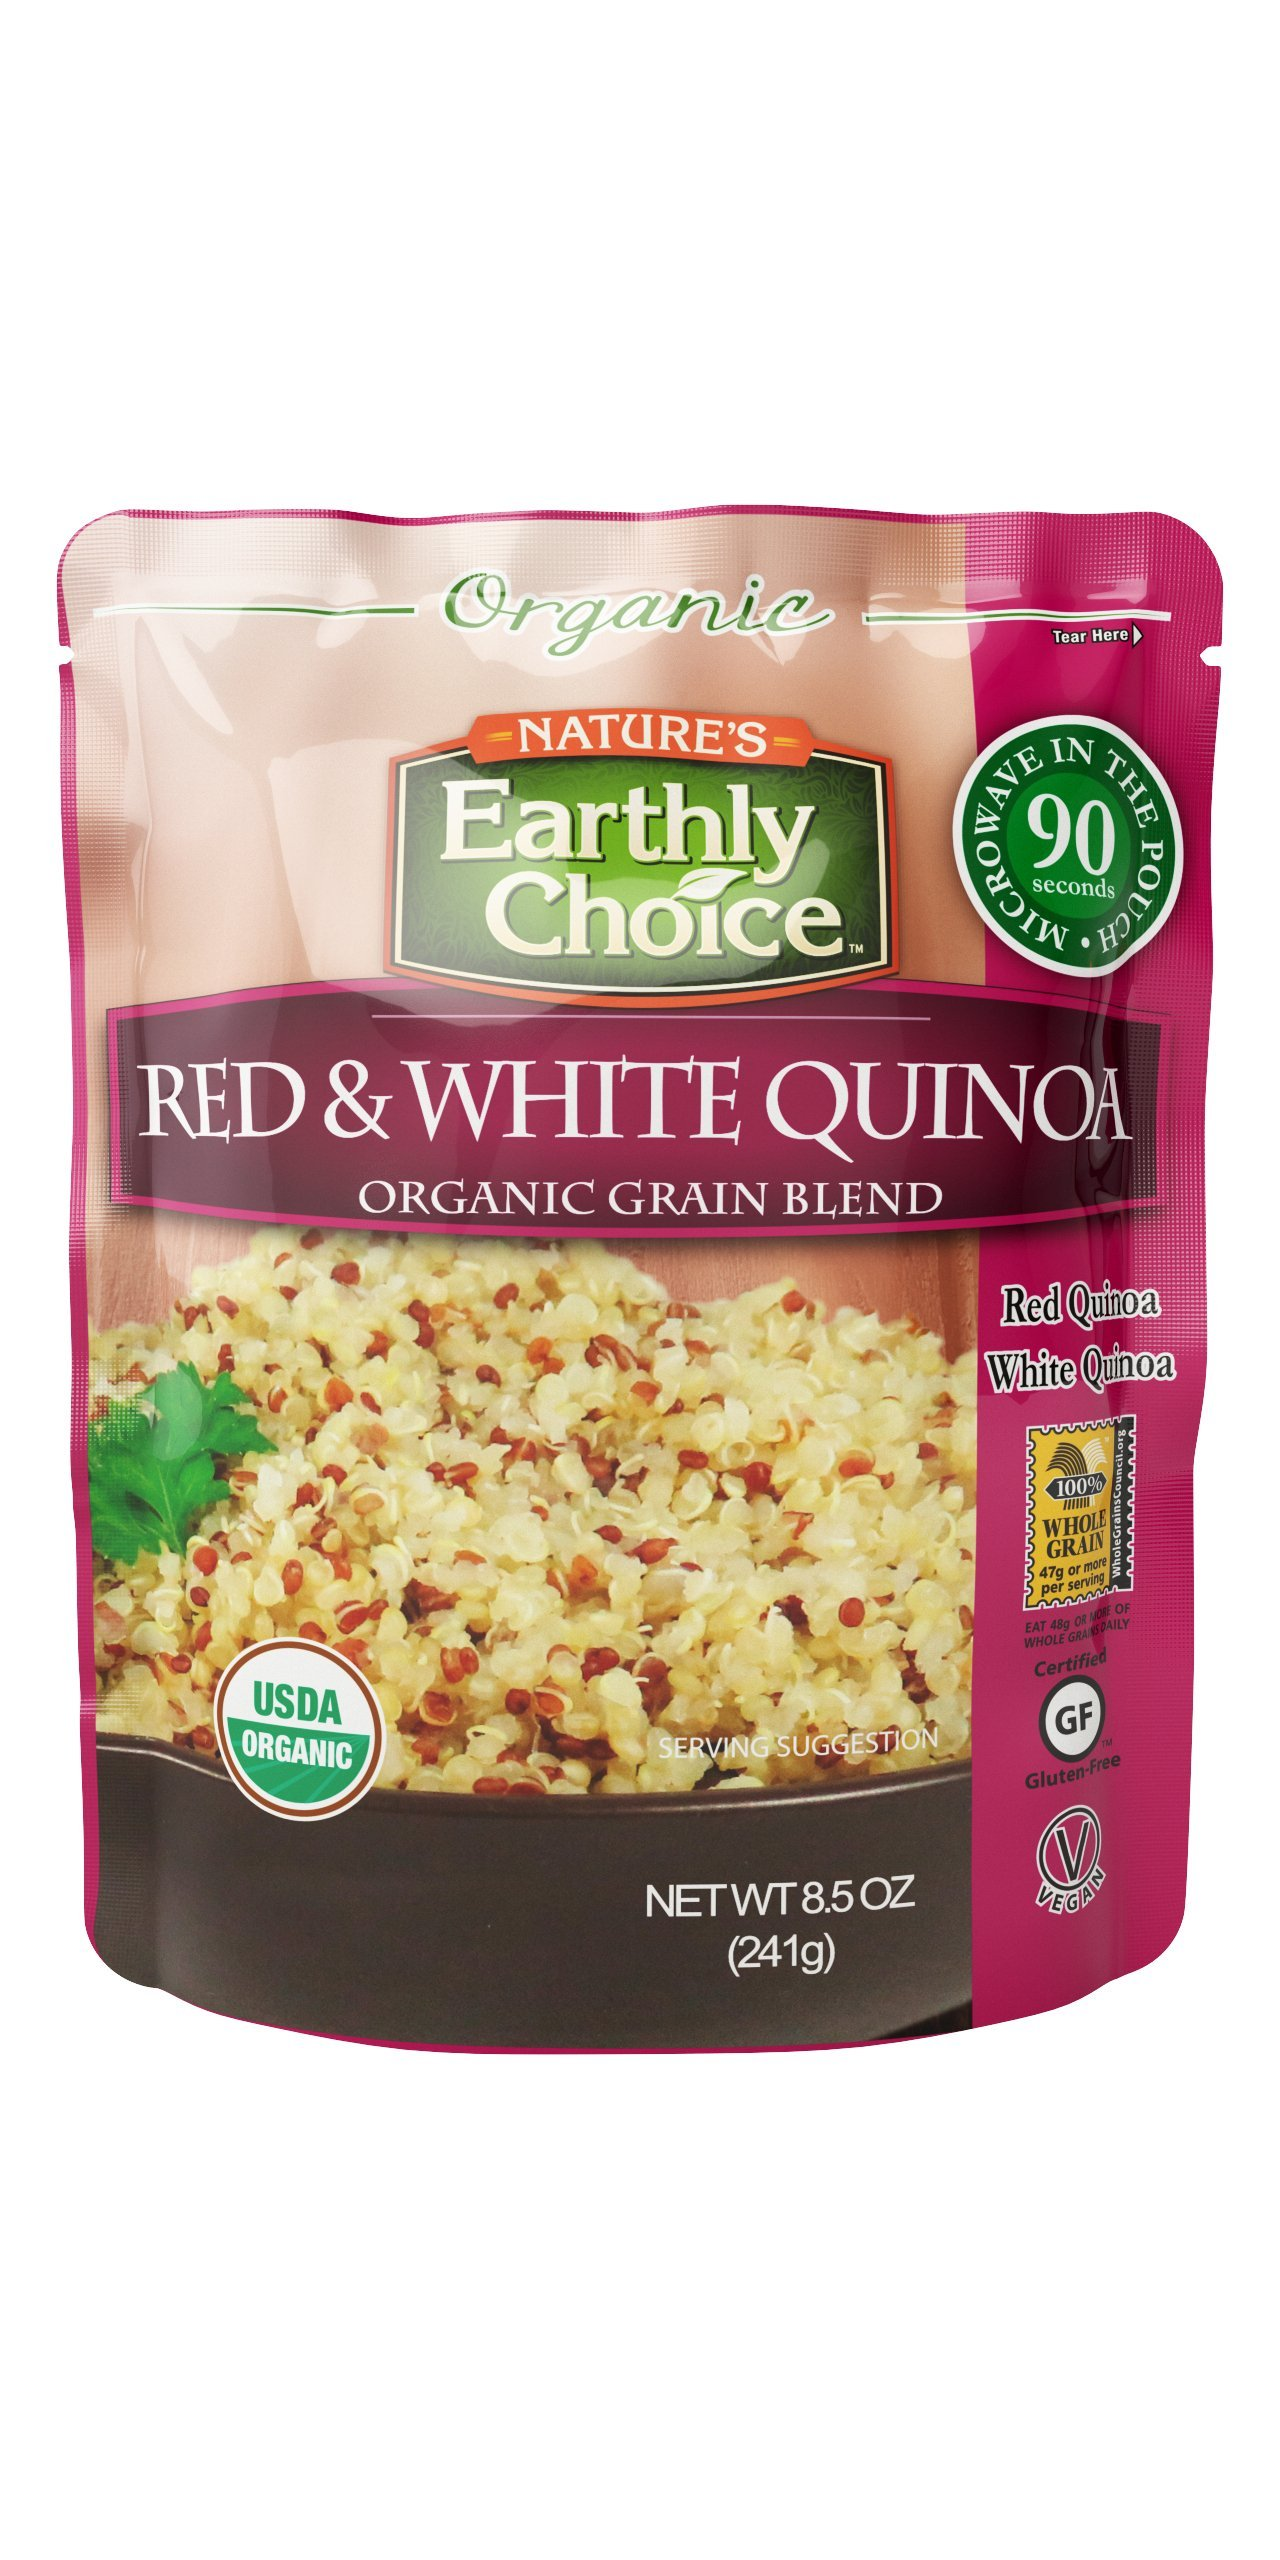 Nature's Earthly Choice Organic Grain Blend, Red & White Quinoa, 8.5 Ounce (Pack of 6)